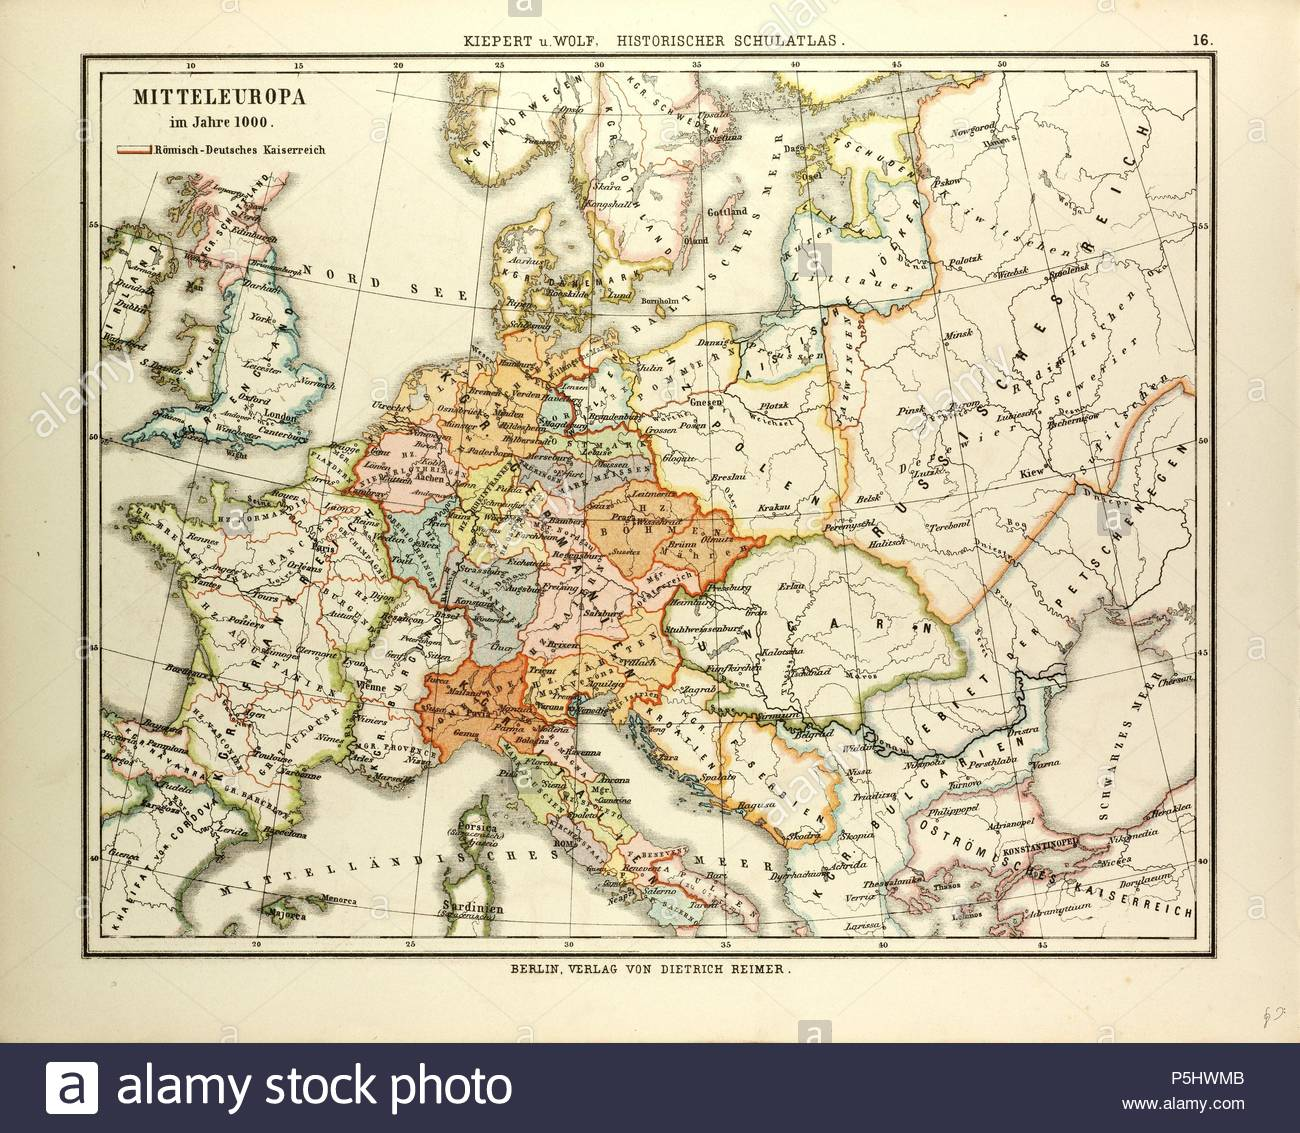 Map Of Central Europe In 1000 A D Stock Photo 209991051 Alamy